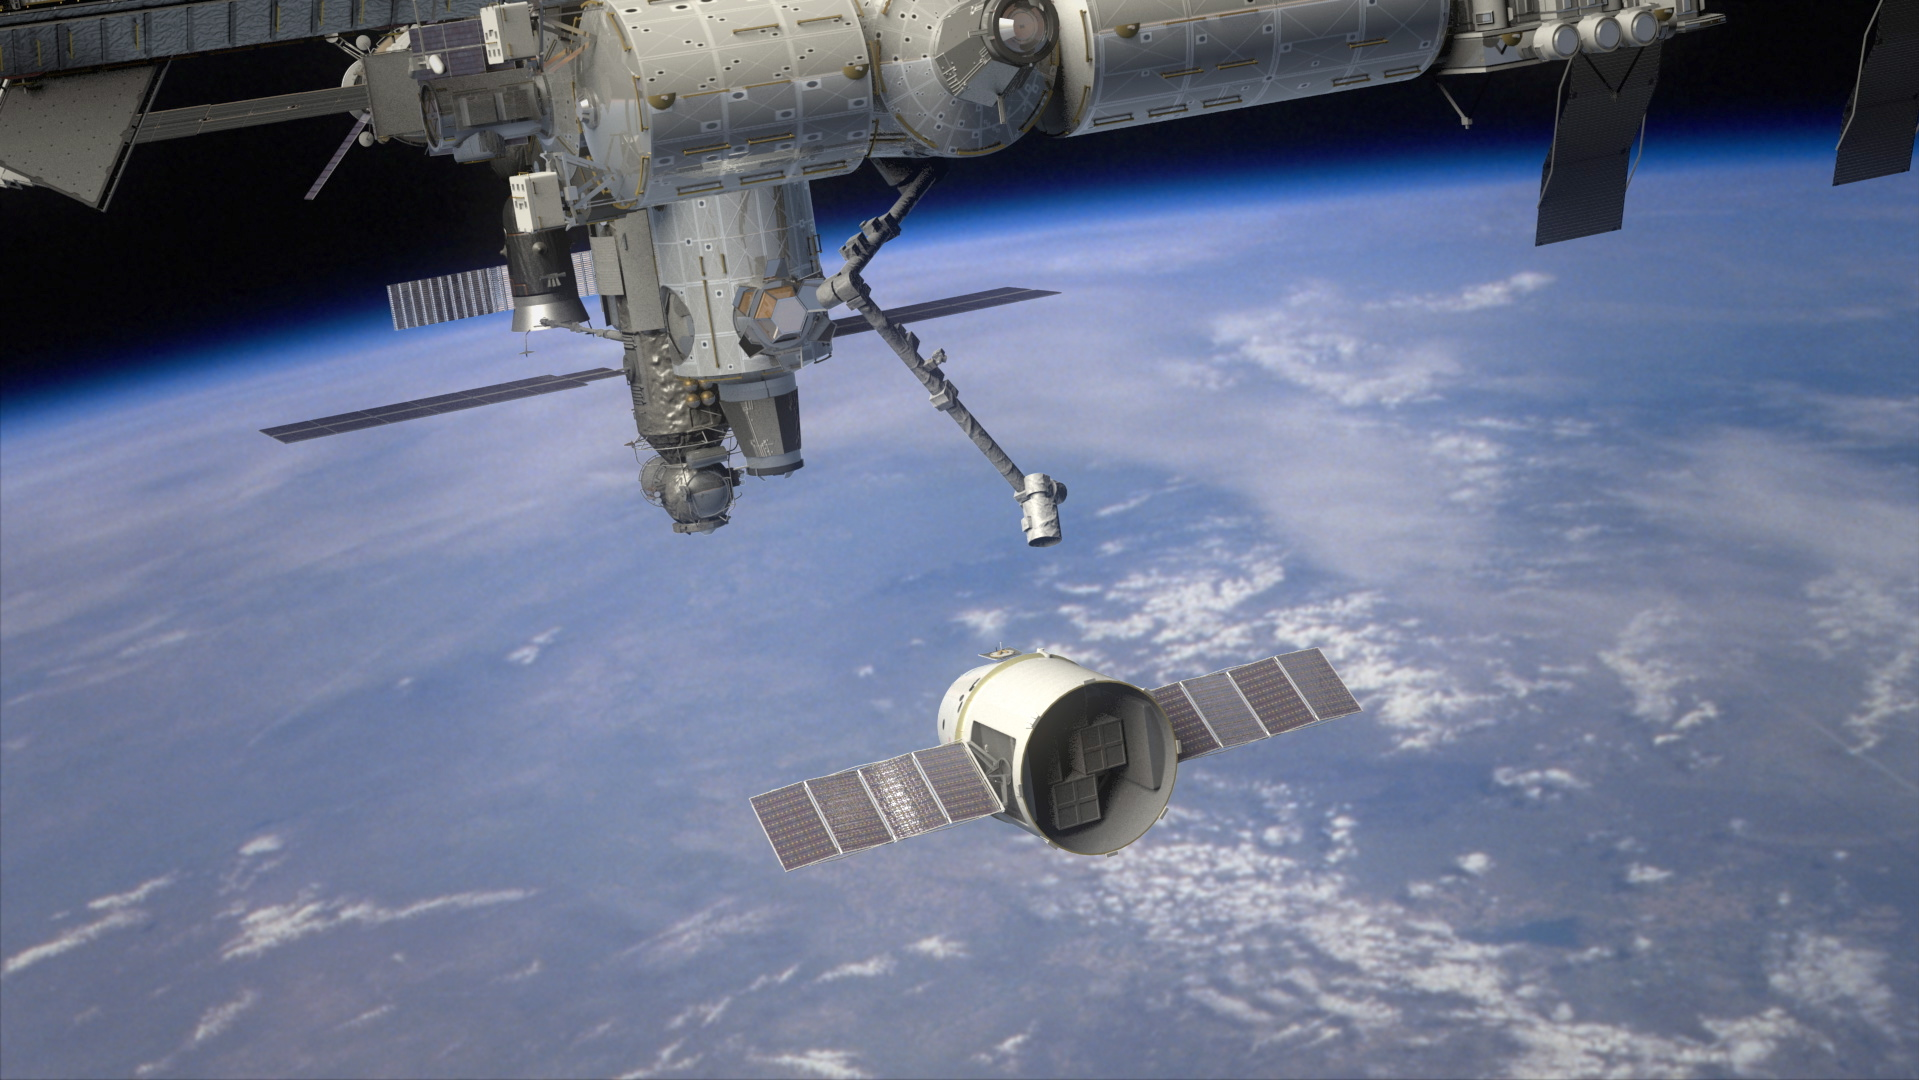 earth dragon from spacex - photo #22